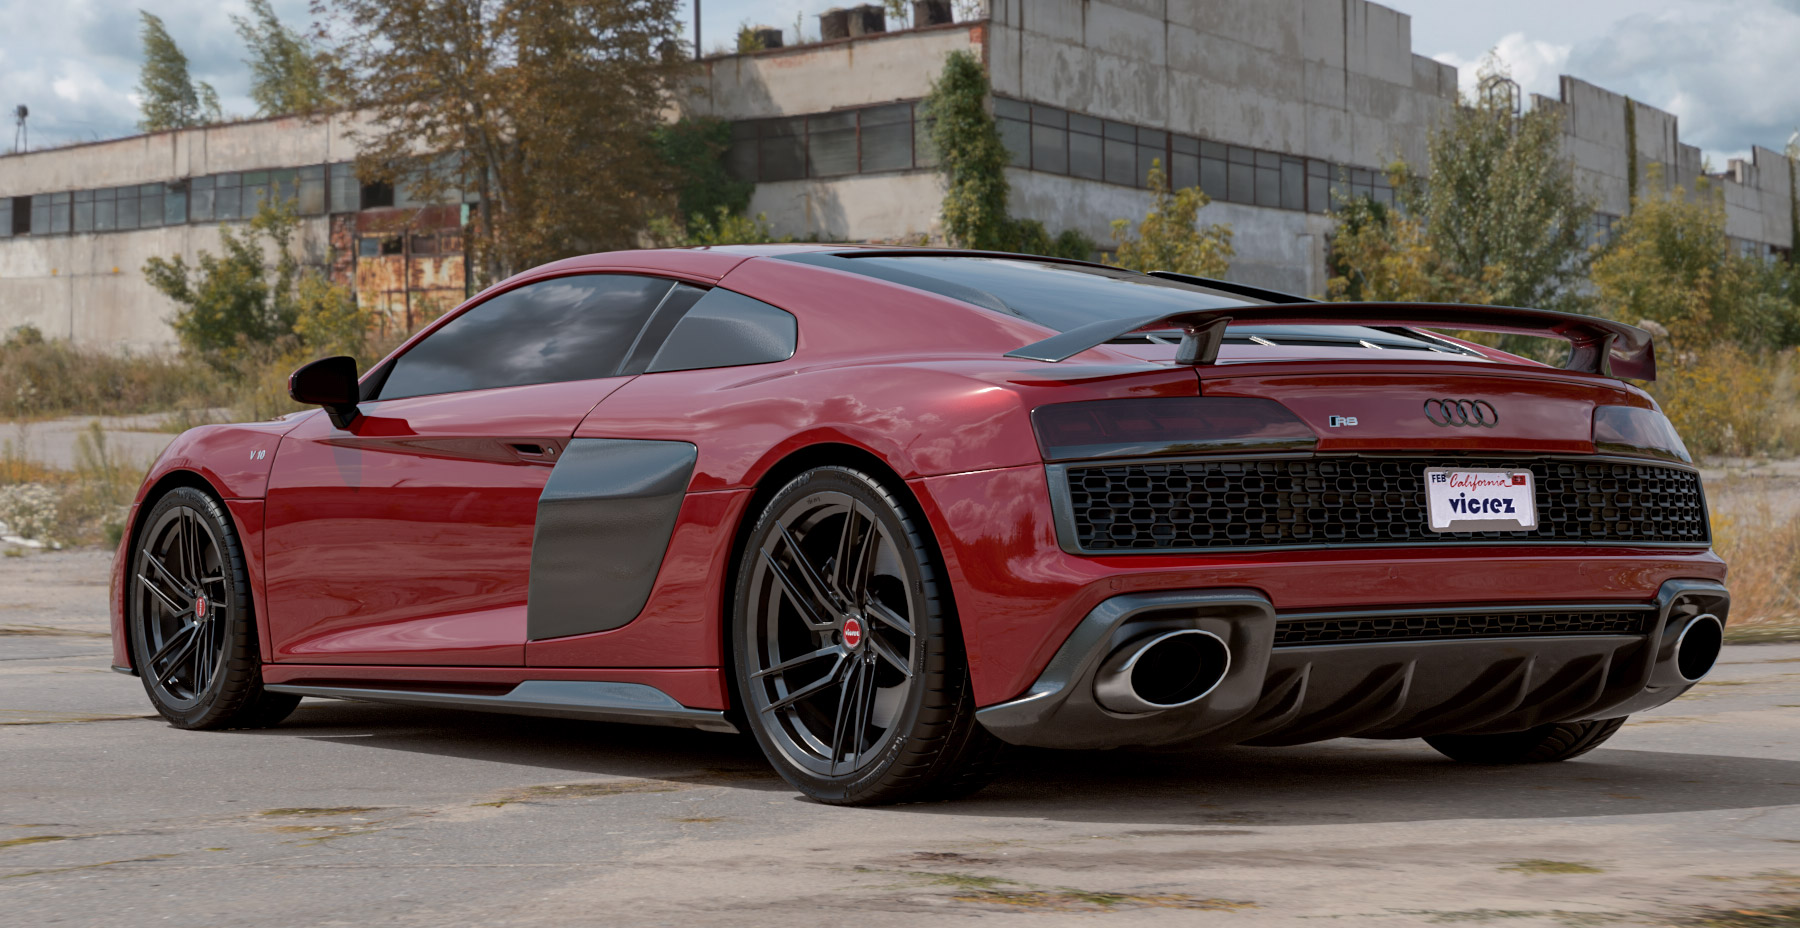 2020 Red Audi R8 x Vicrez V3F Forged Wheels  (Finished in Gloss Black)